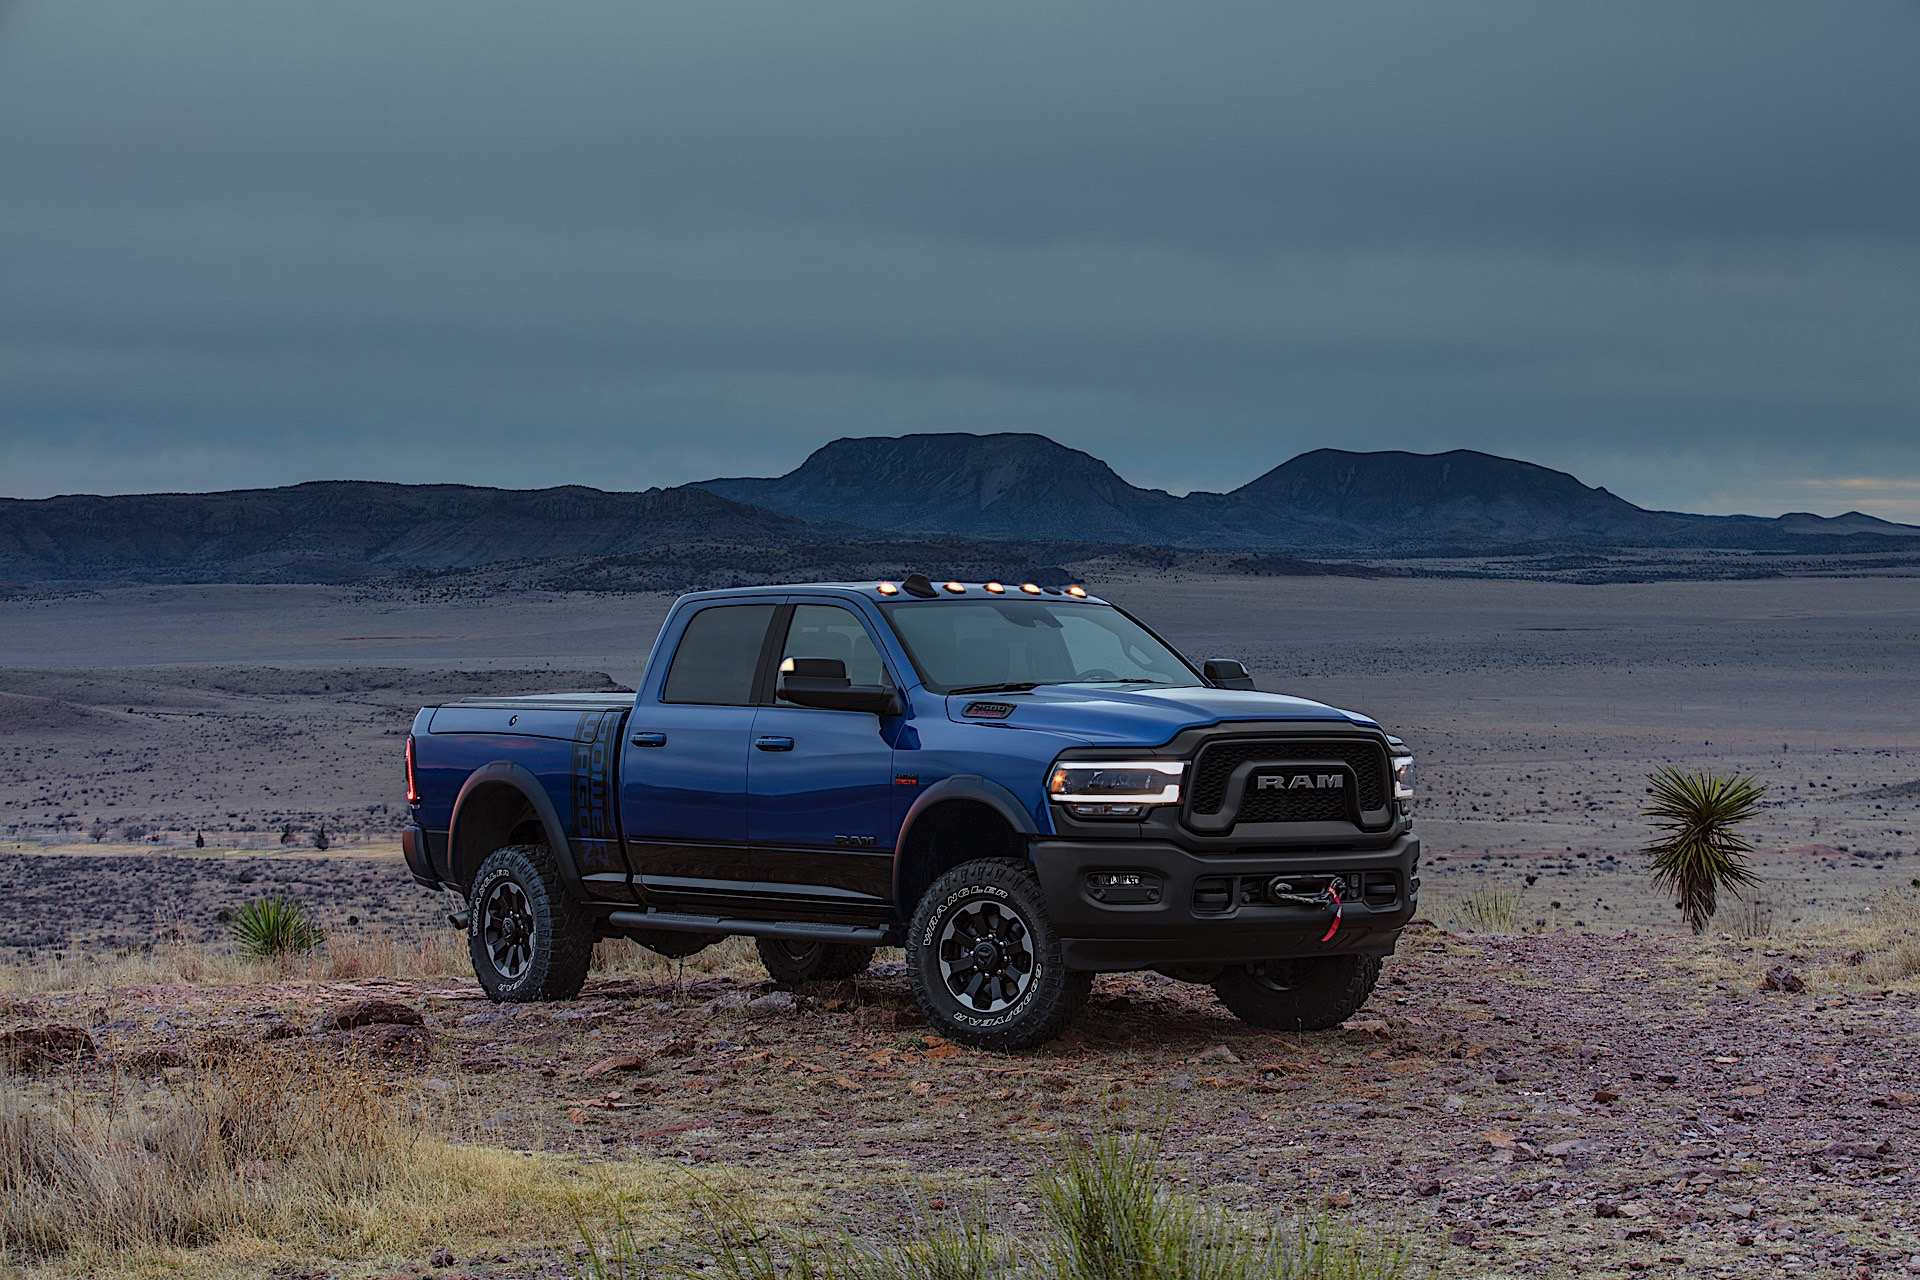 69 Great 2019 Dodge Power Wagon Overview for 2019 Dodge Power Wagon